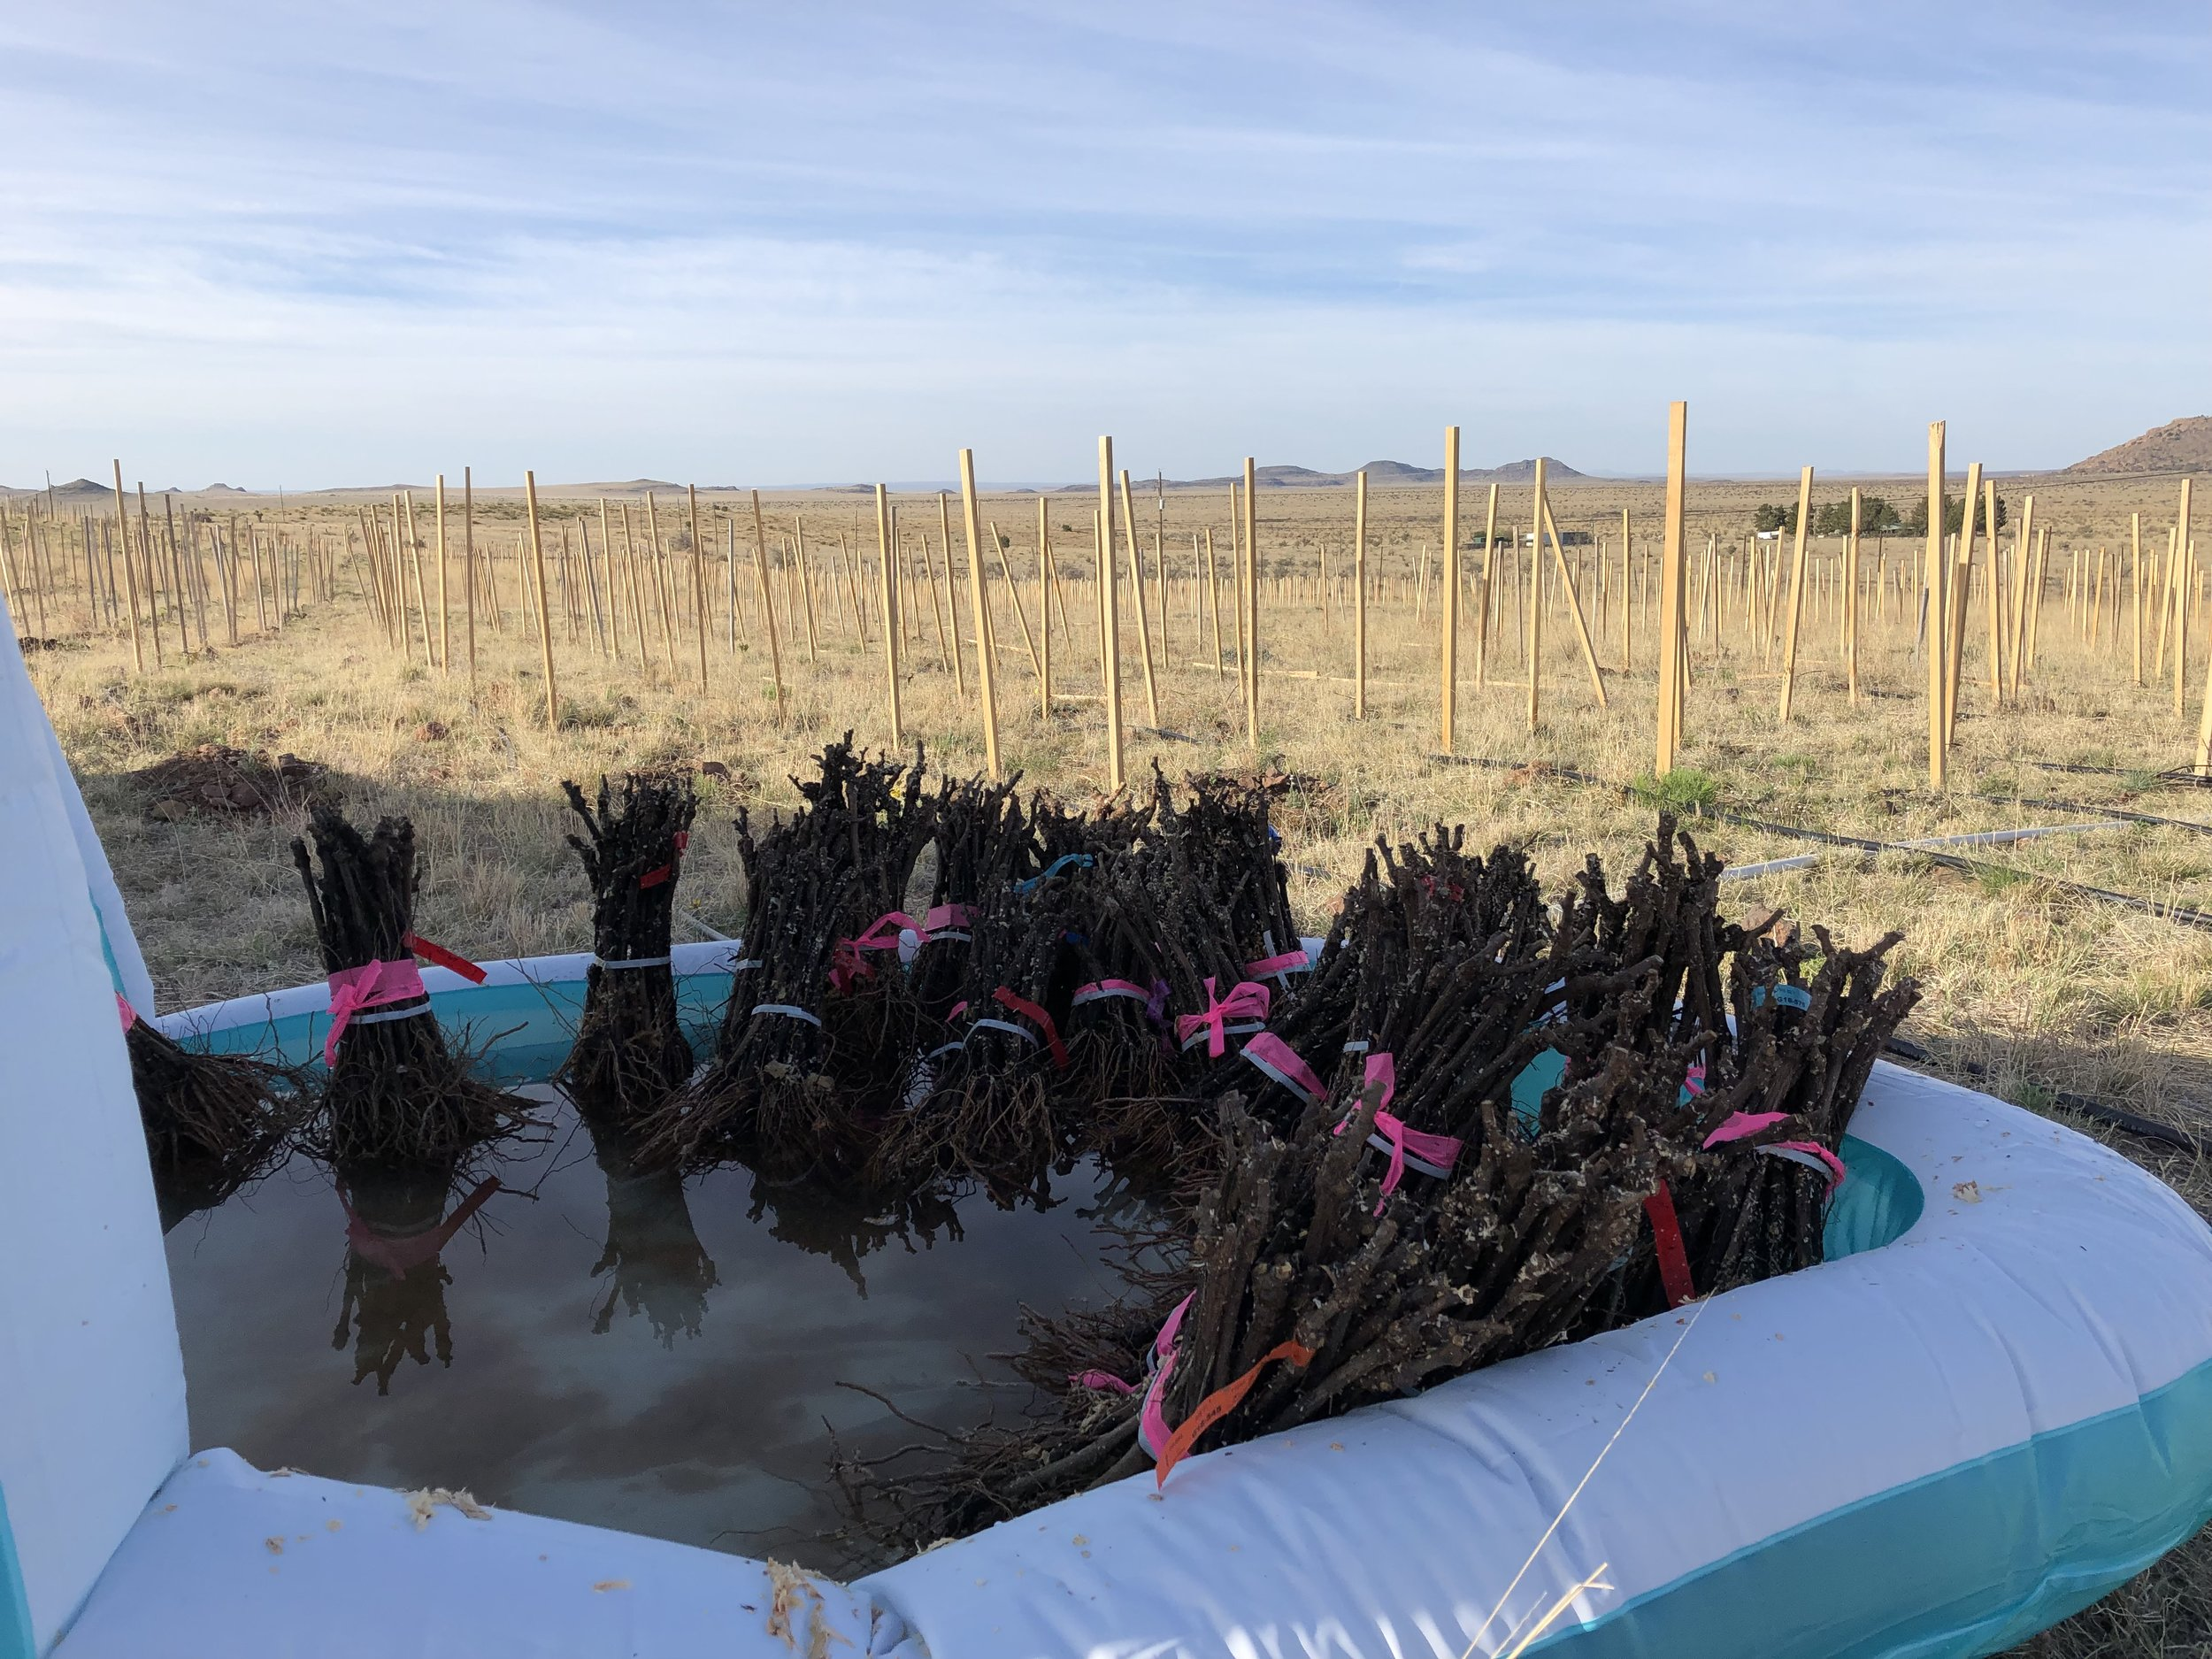 This year we used an inflatable swimming pool to keep the vines nice and moist. We took each shipment of vines directly from the truck and put them strait in water until it was time for them to go into the ground.